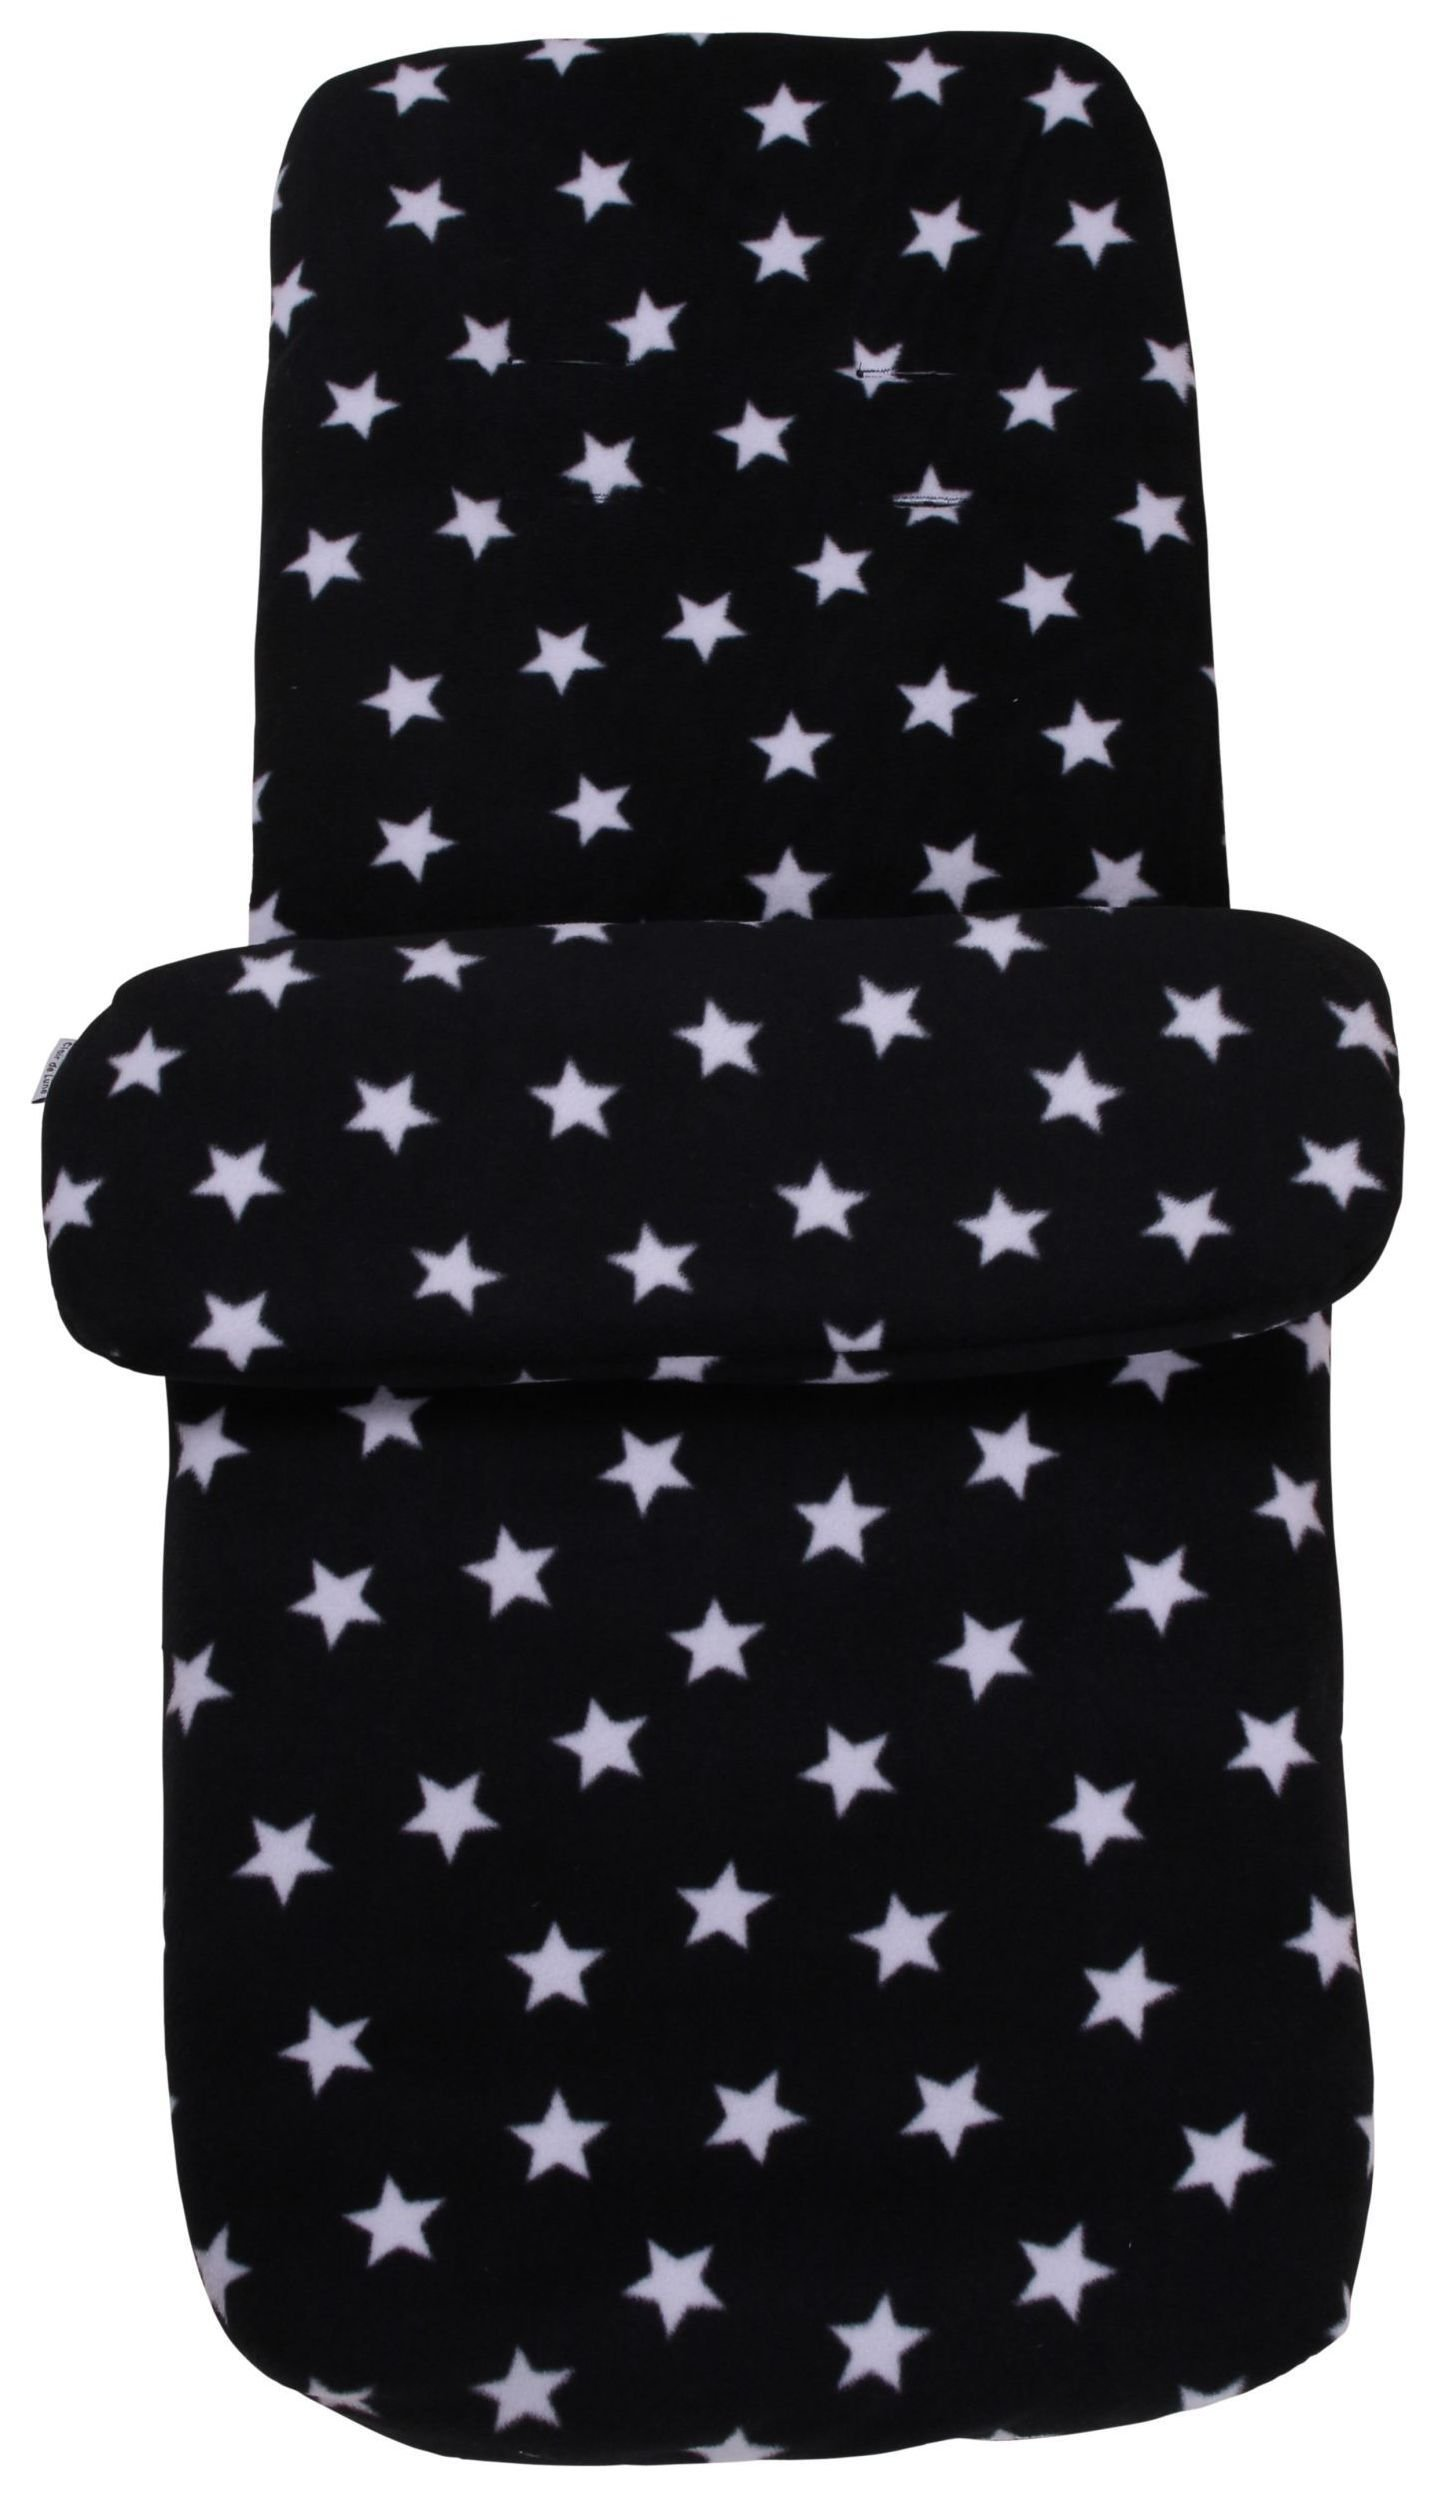 Image of Clair de Lune Fleece Pushchair Footmuff - Black.